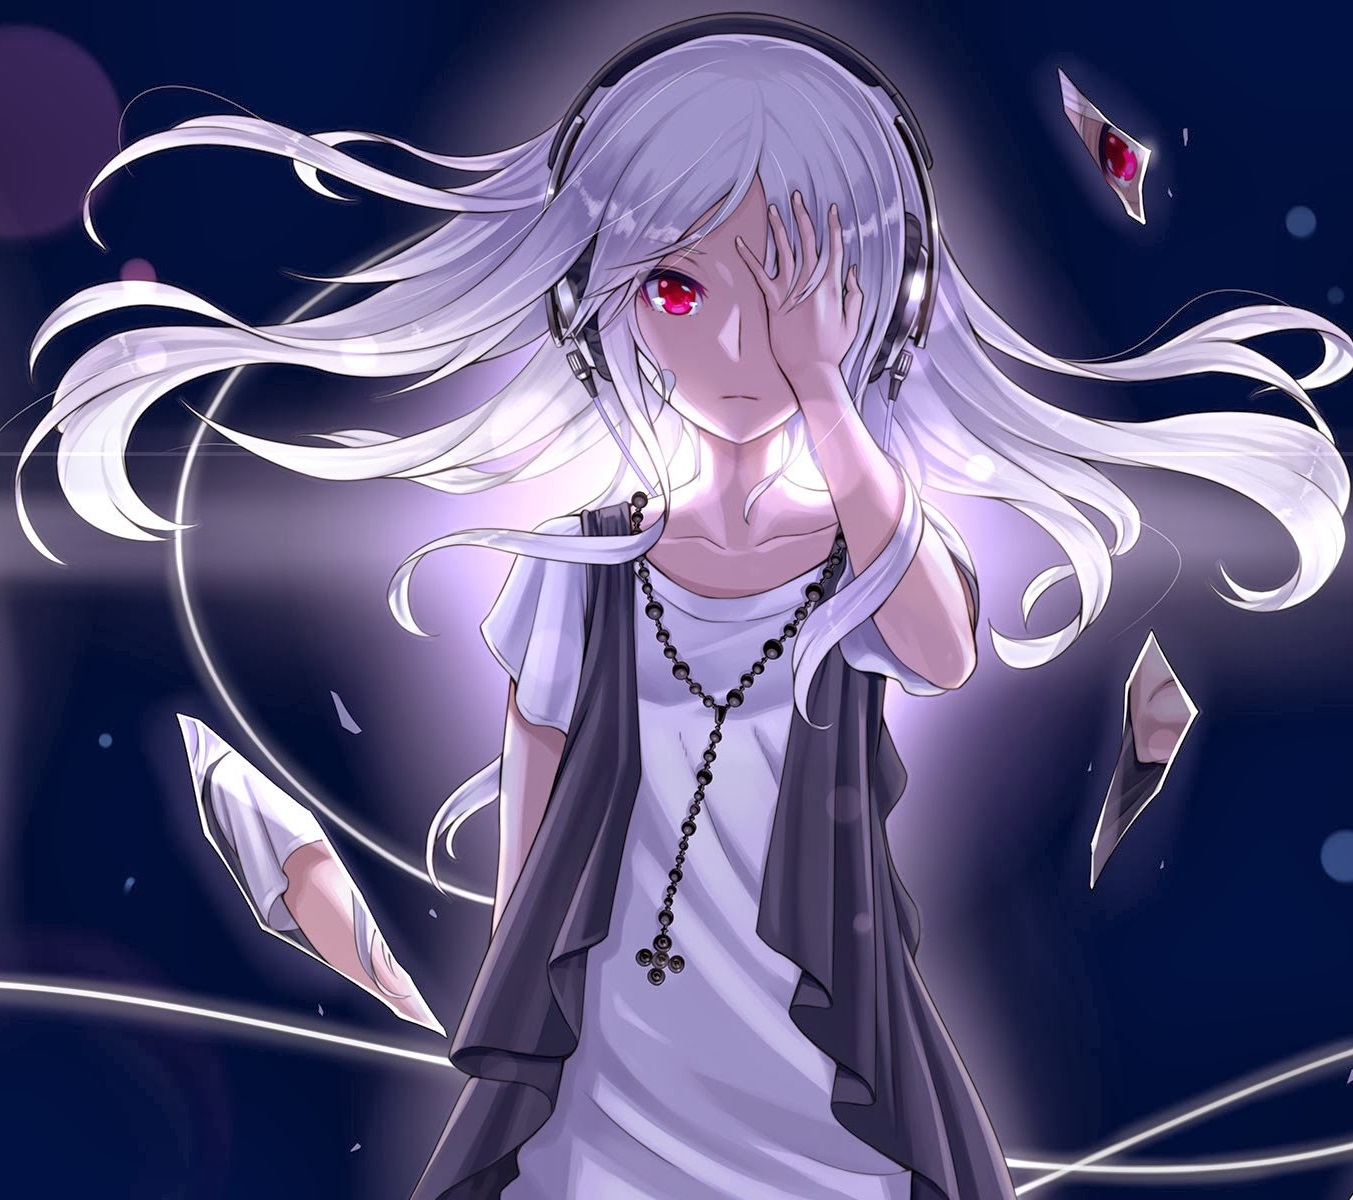 Anime Characters Red Eyes : The gallery for gt anime girl with long white hair